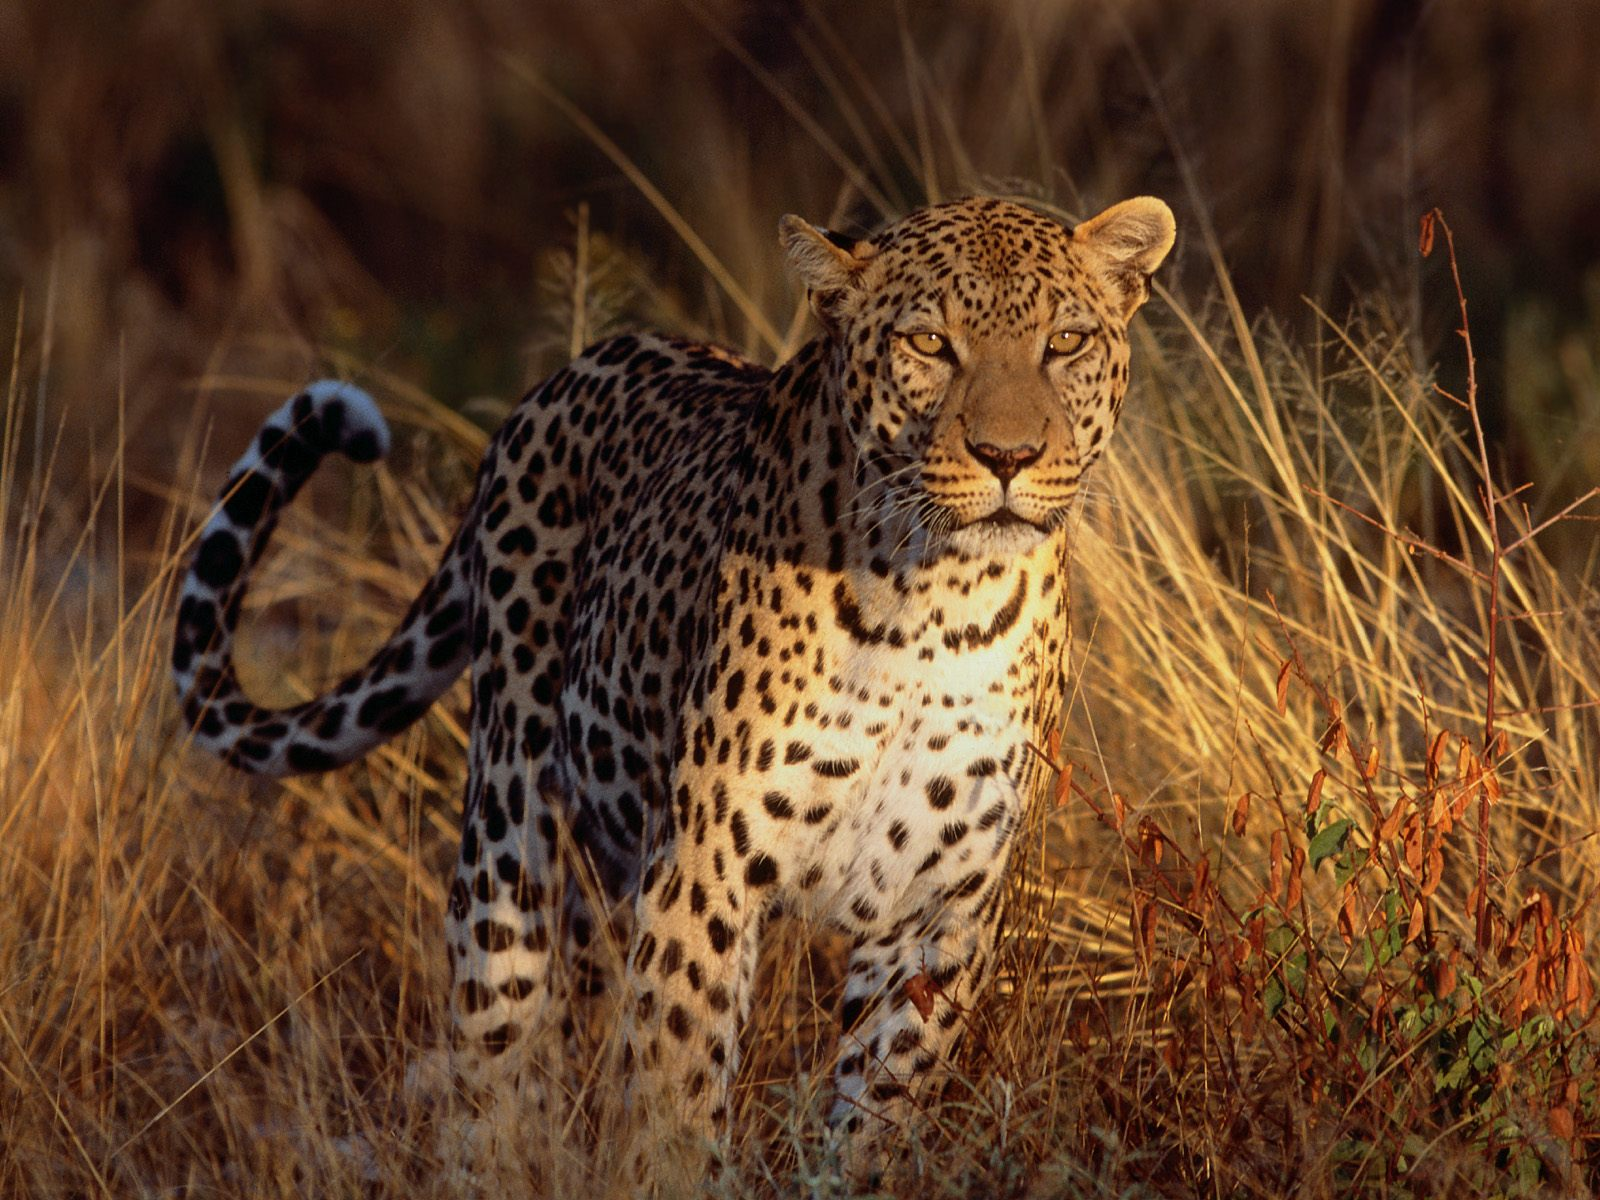 Leopard hd wallpapers | Movies Songs Lyrics